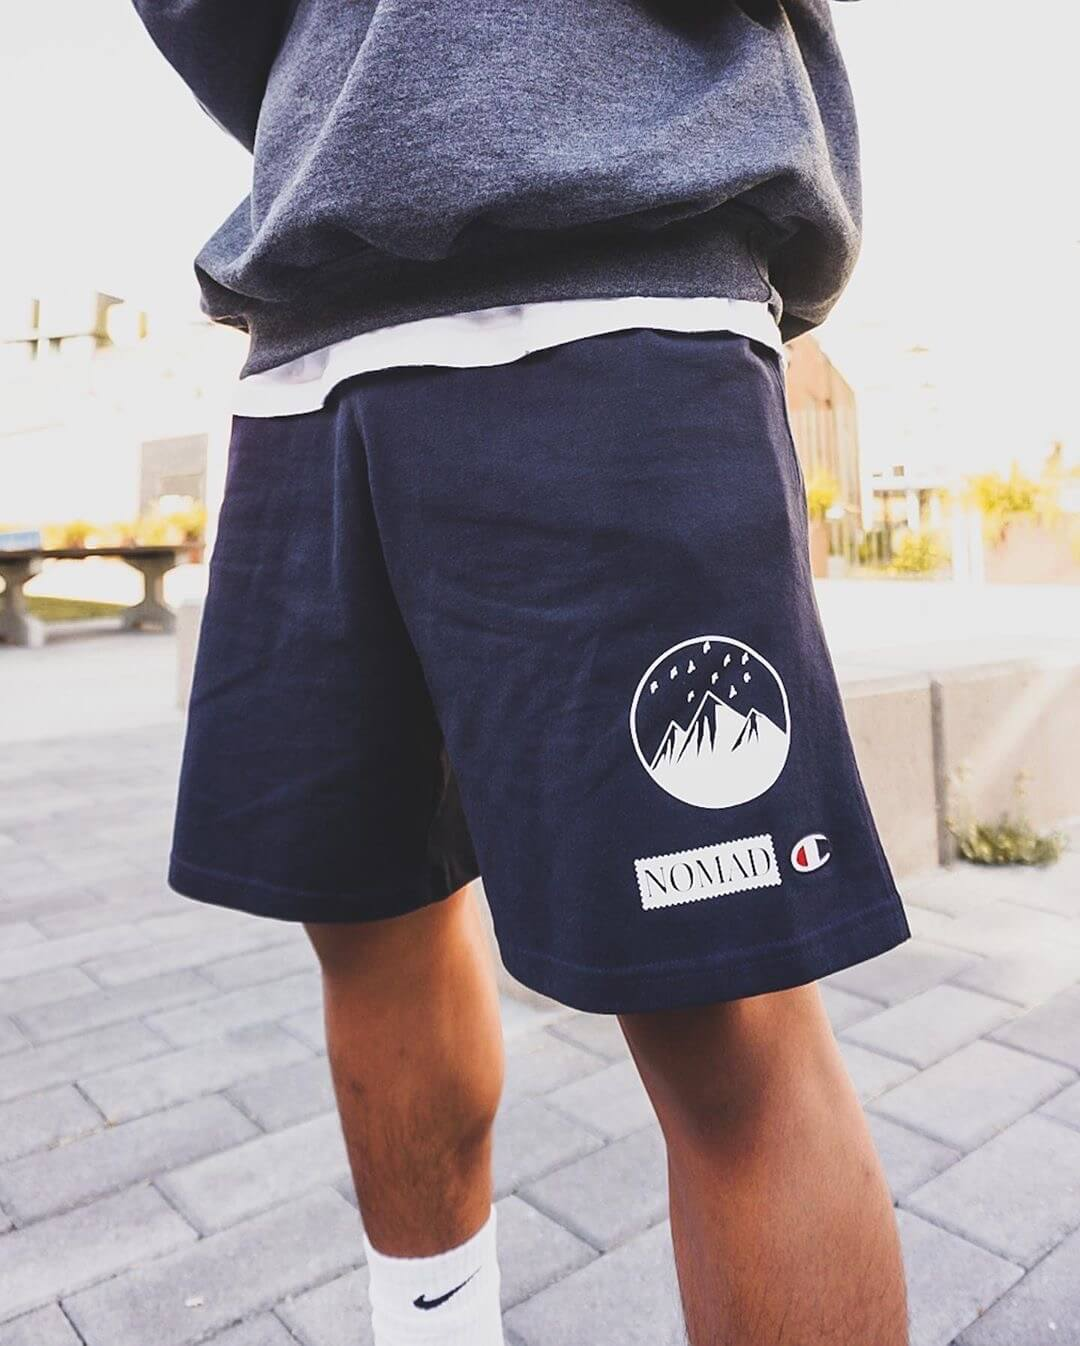 Noelly West wearing the Nomad Creative Works Mountain Print Shorts in Navy with Quartz printing